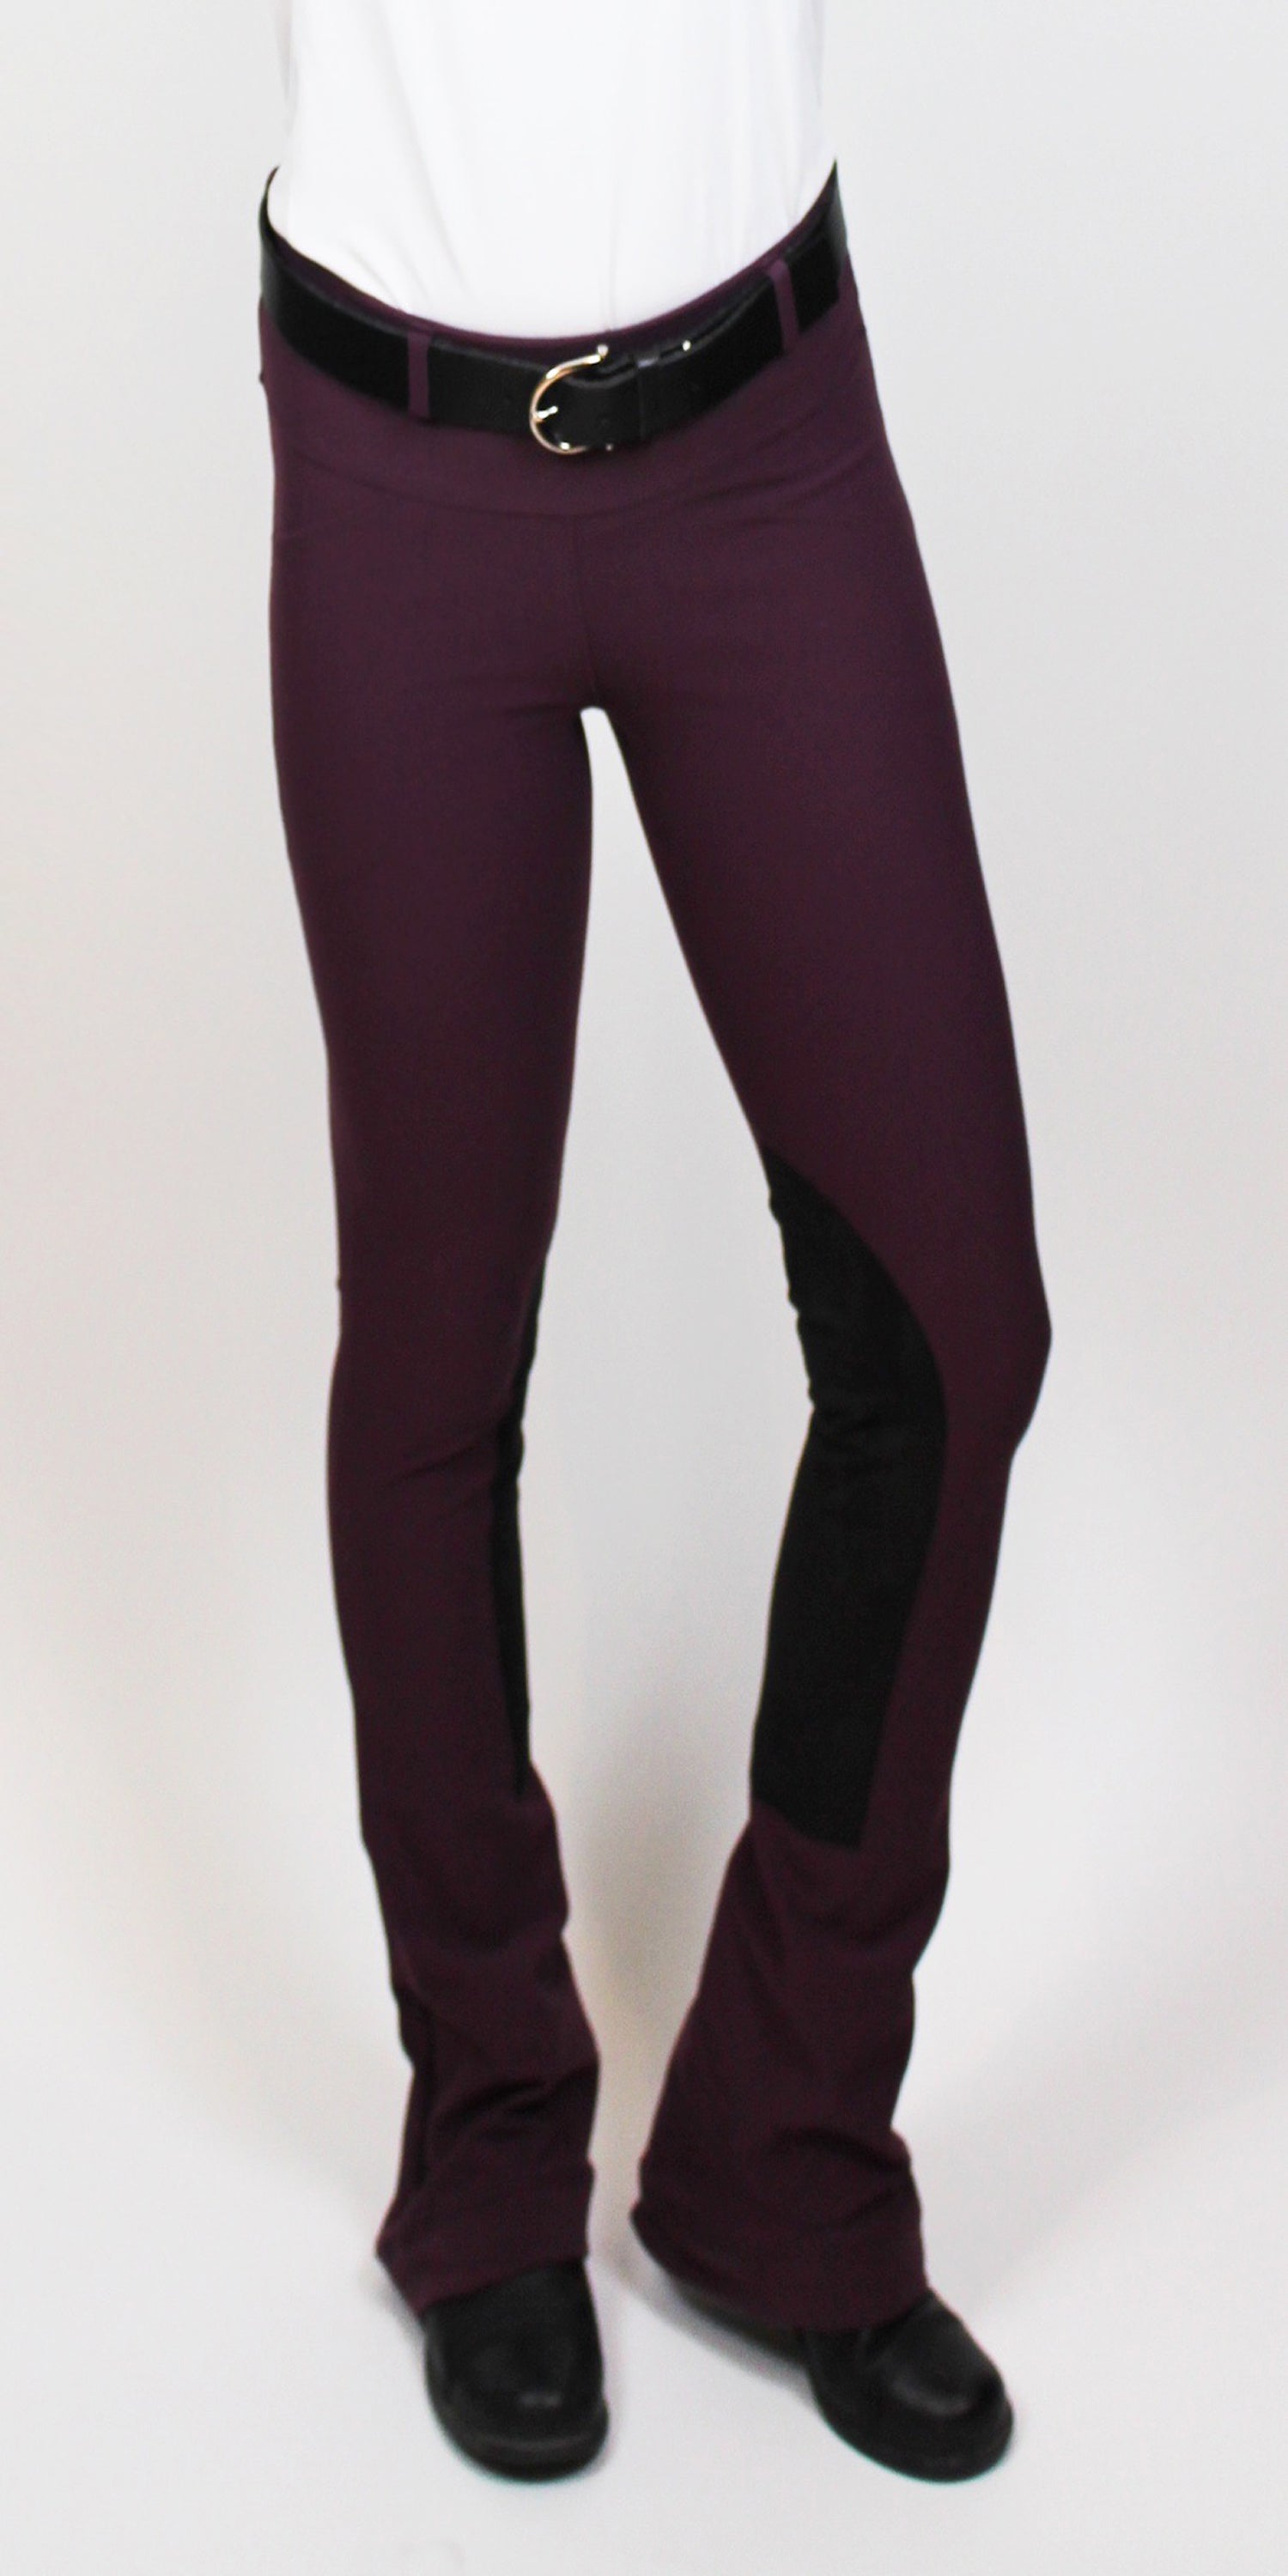 FALL 2018 Signature Knee Patch Jods Violet Columbine